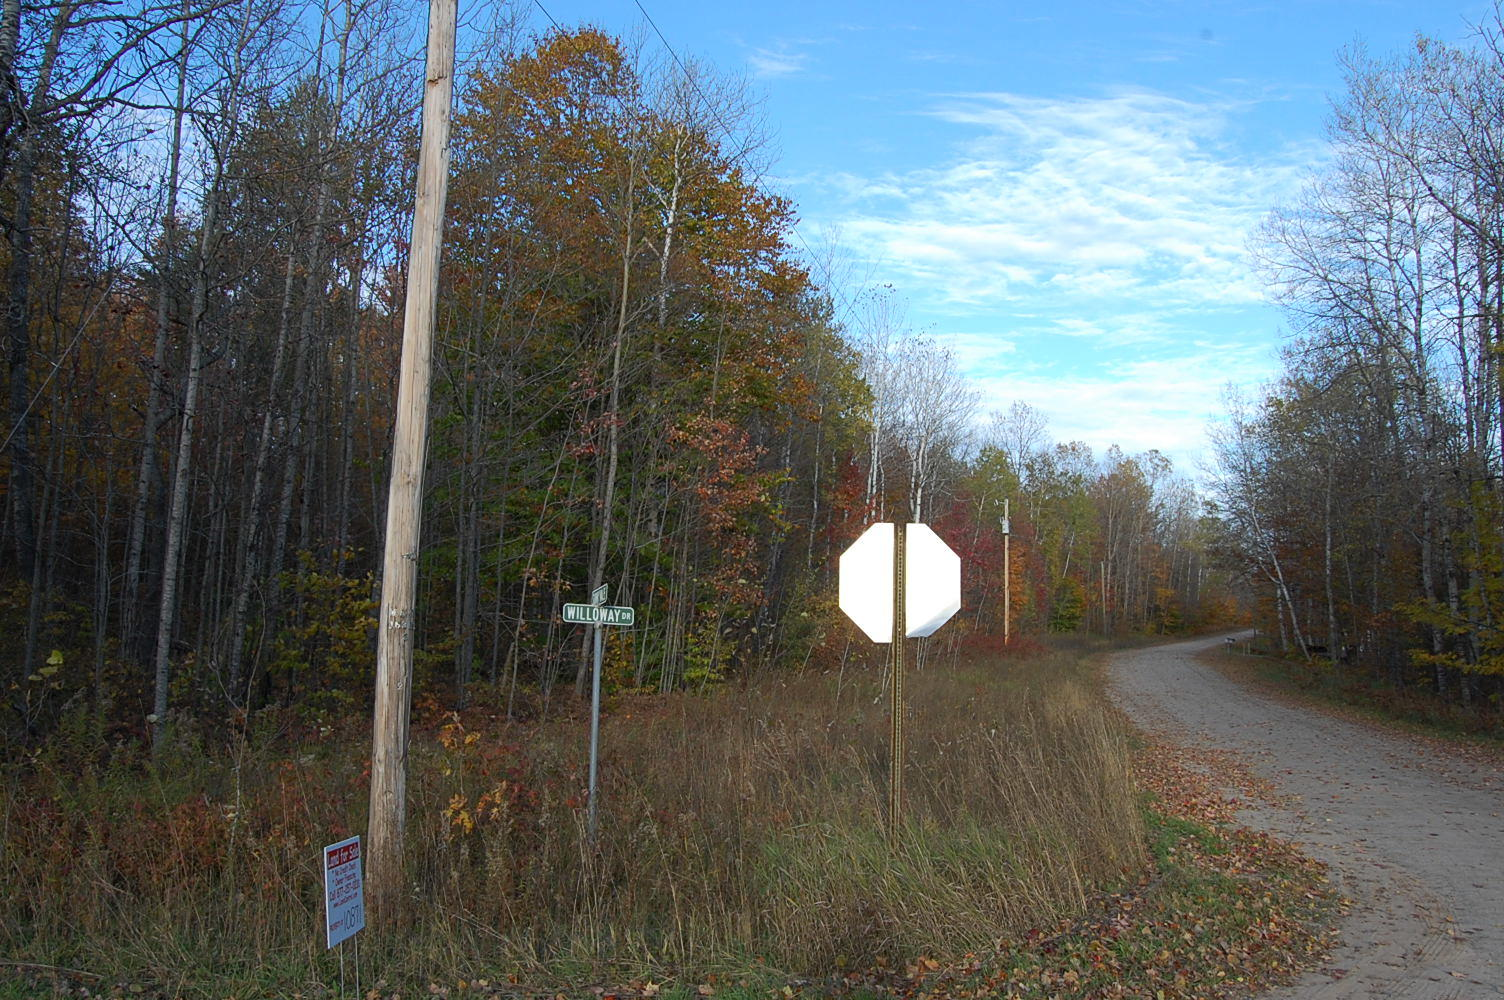 More than Half Acre in Picturesque Michigan - Image 3